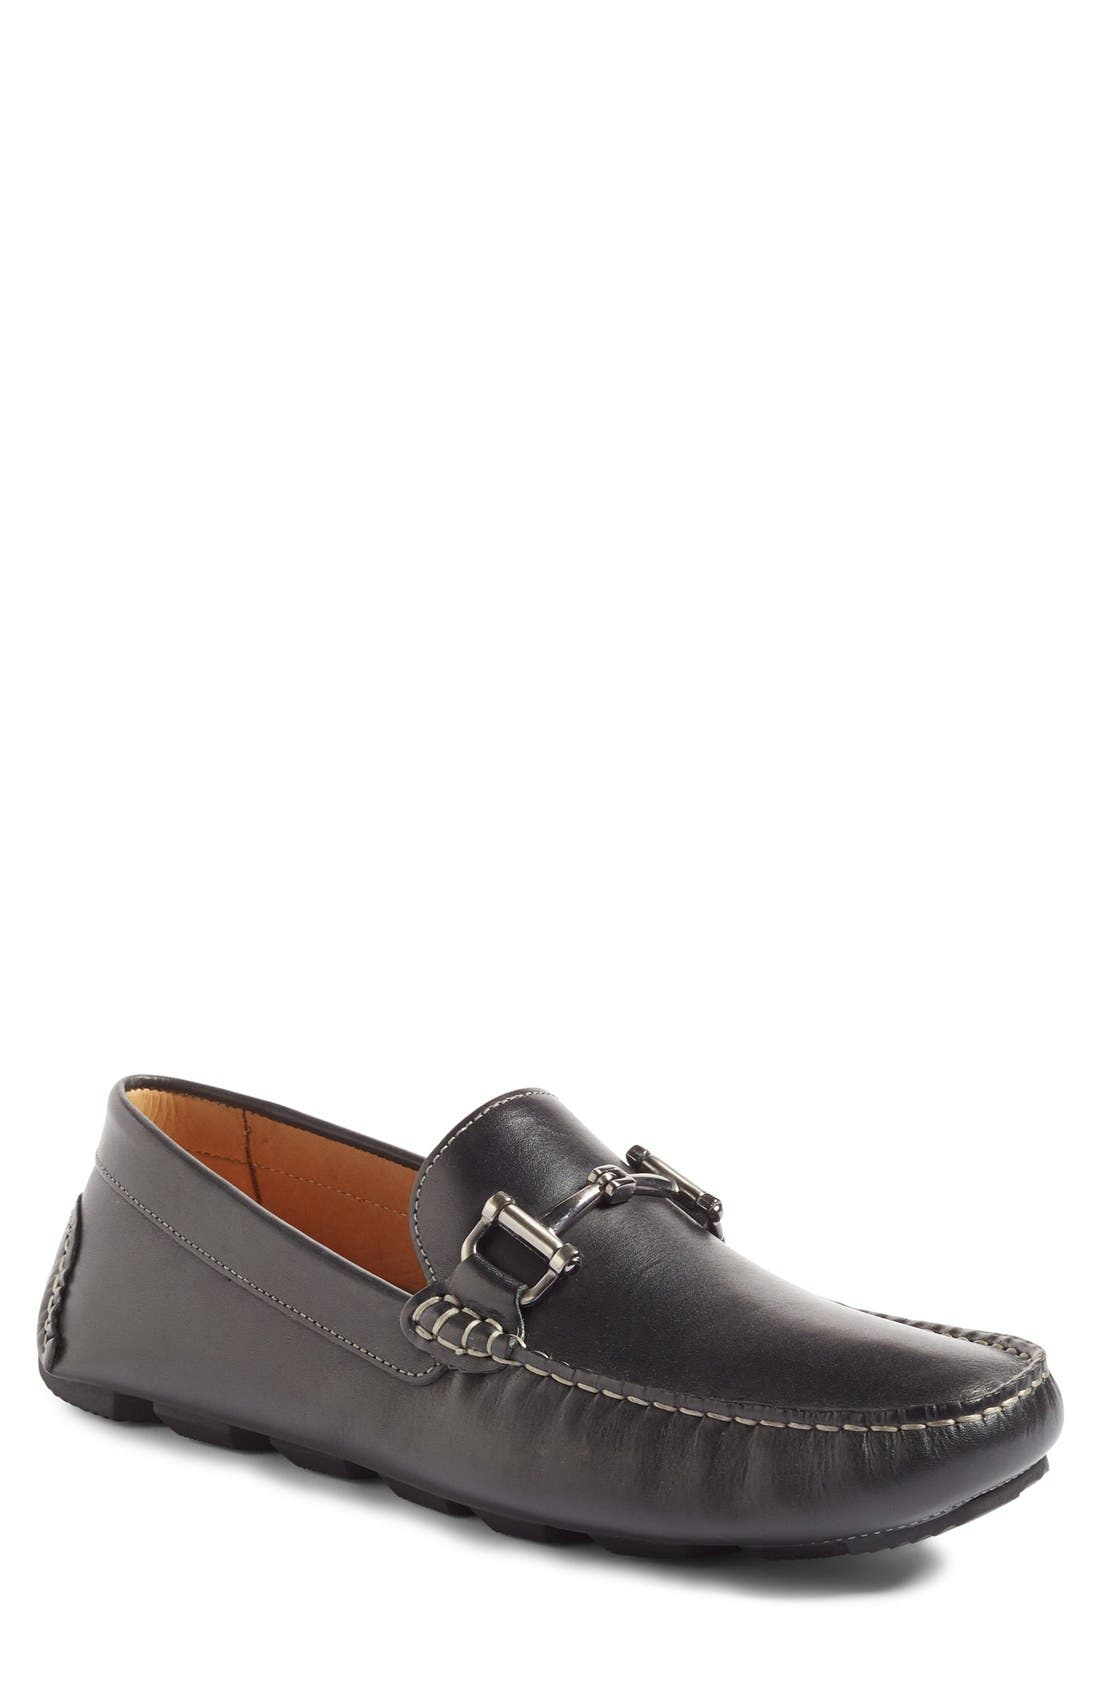 Marco Driving Shoe,                             Main thumbnail 1, color,                             BLACK LEATHER